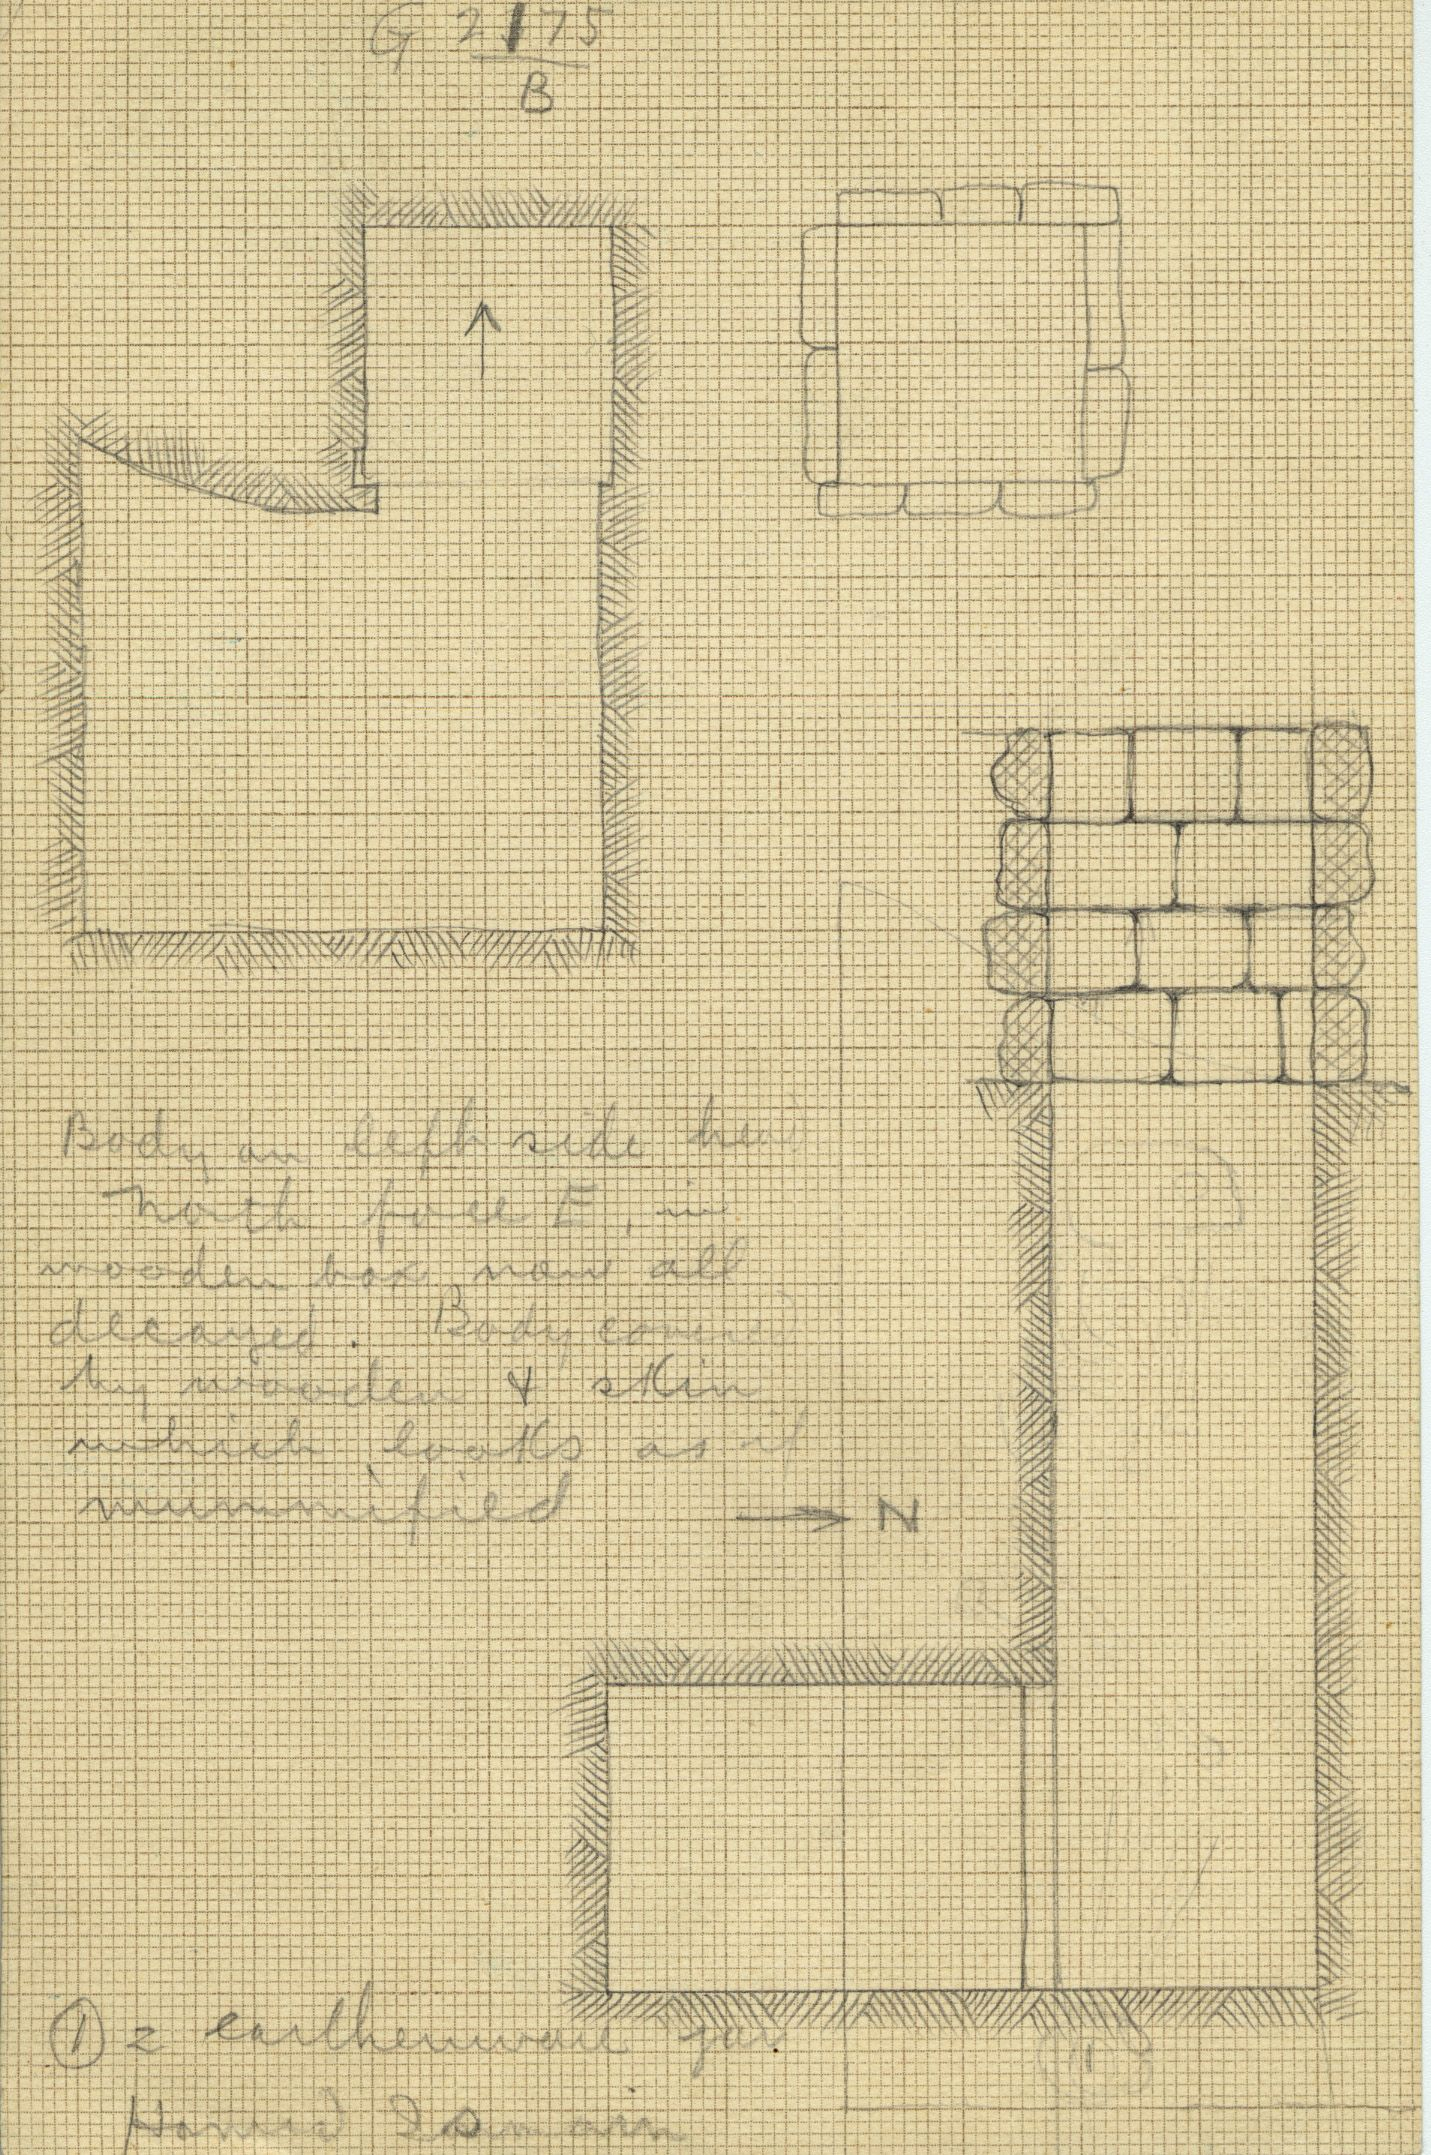 Maps and plans: G 2175, Shaft B